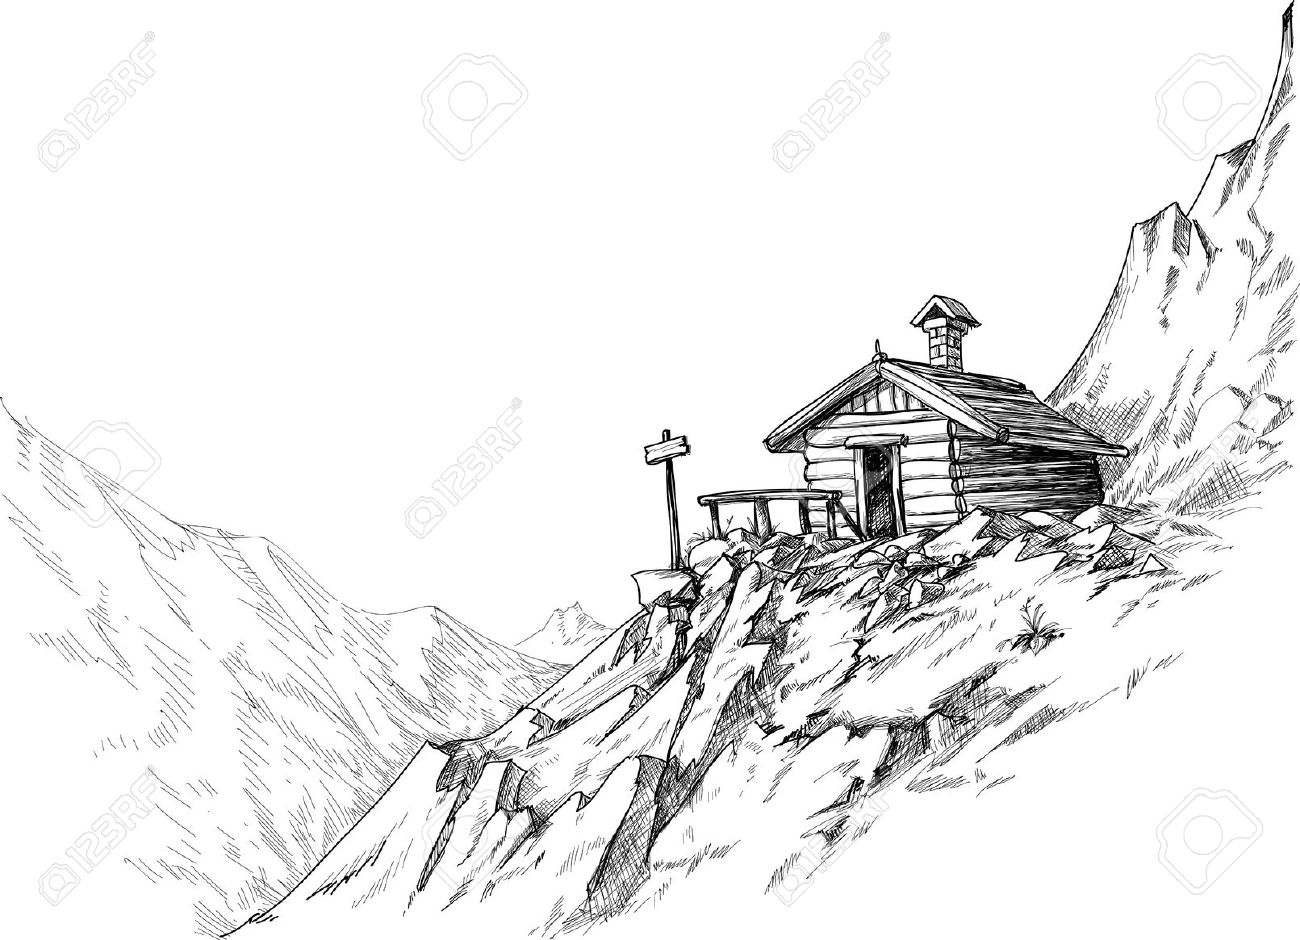 Mountain Hut Sketch Royalty Free Cliparts, Vectors, And Stock.